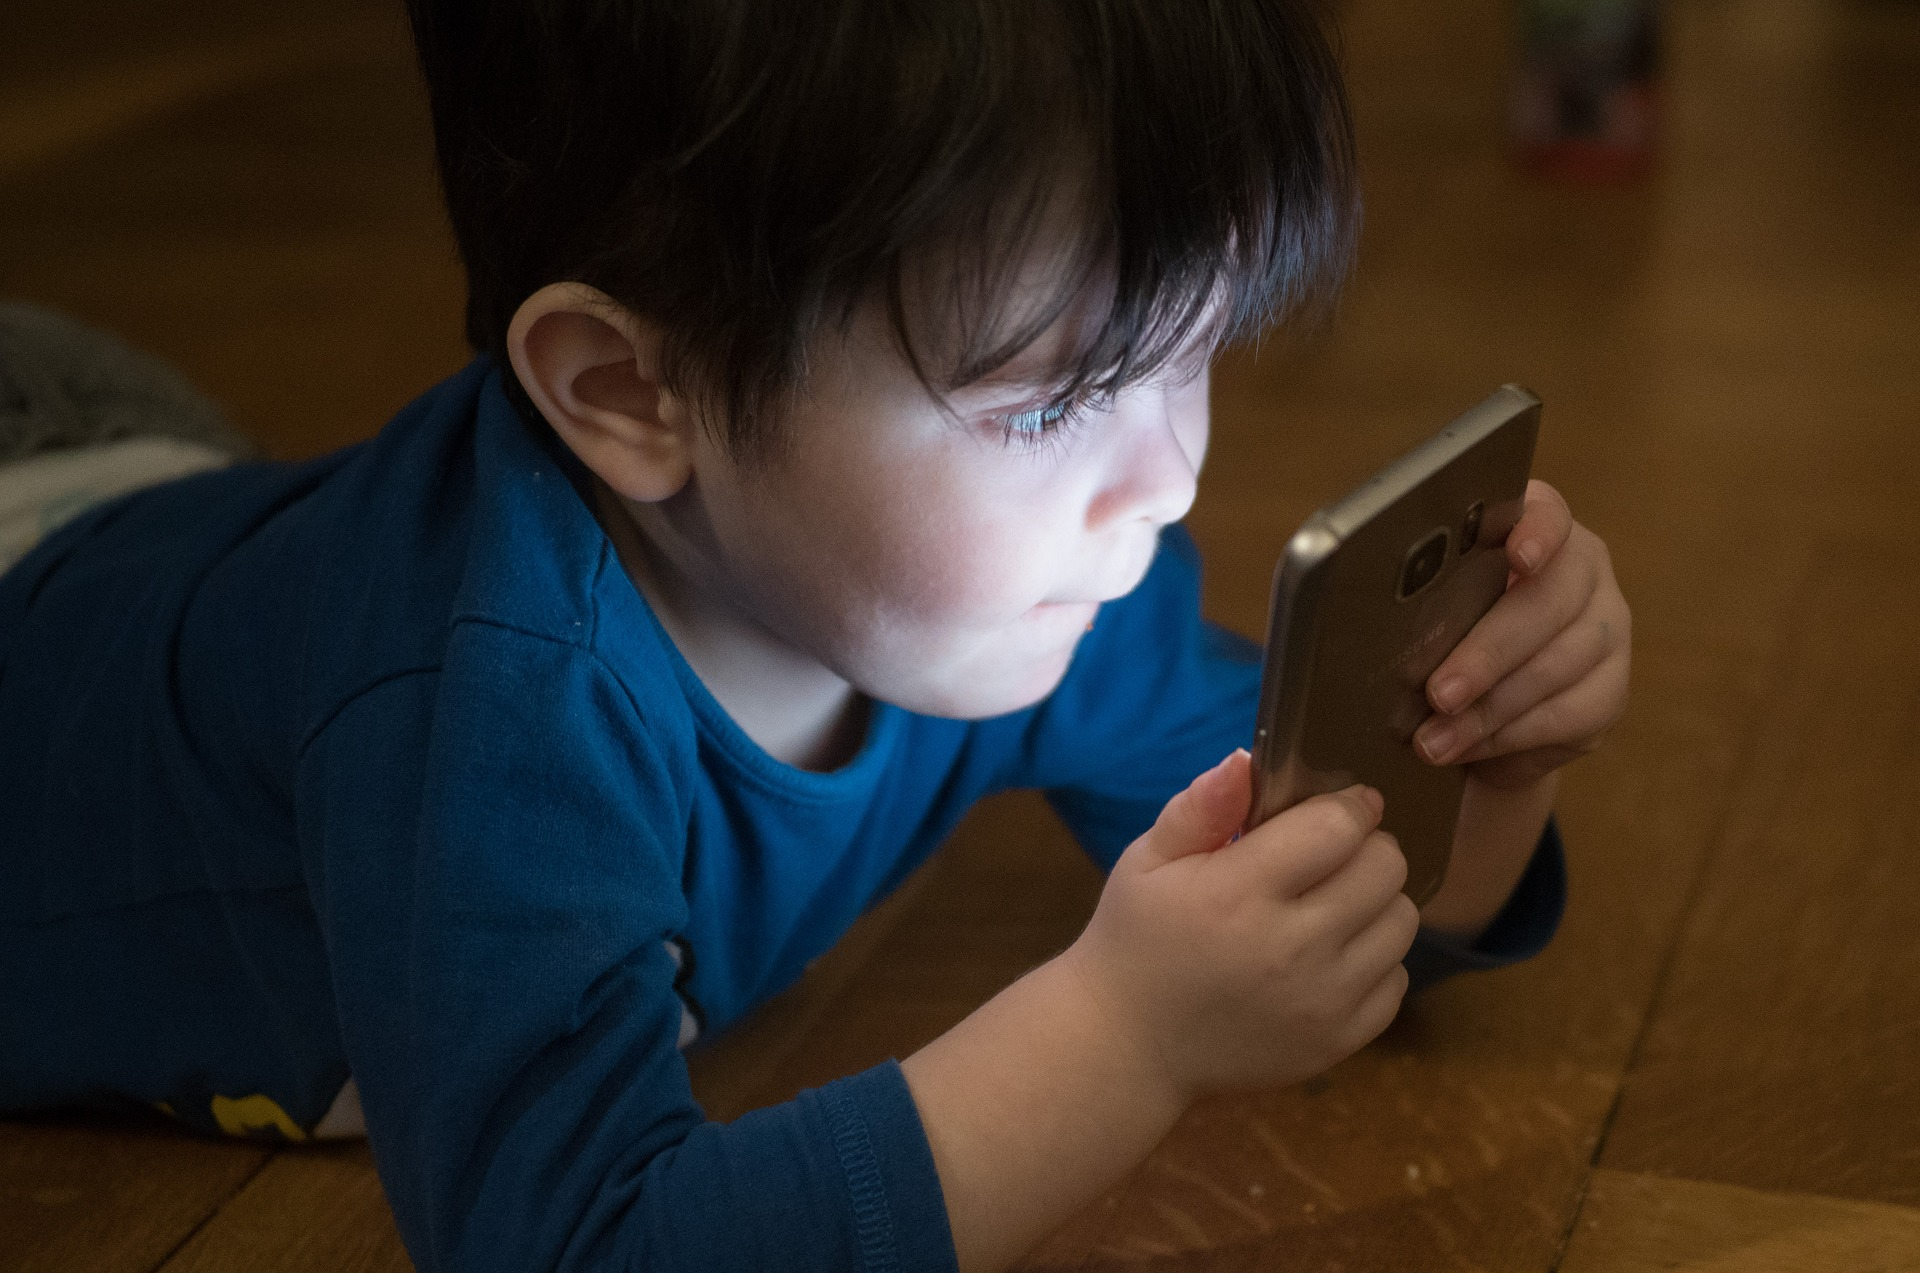 5 Simple Tips to Stop Mobile Phone Addiction in Children